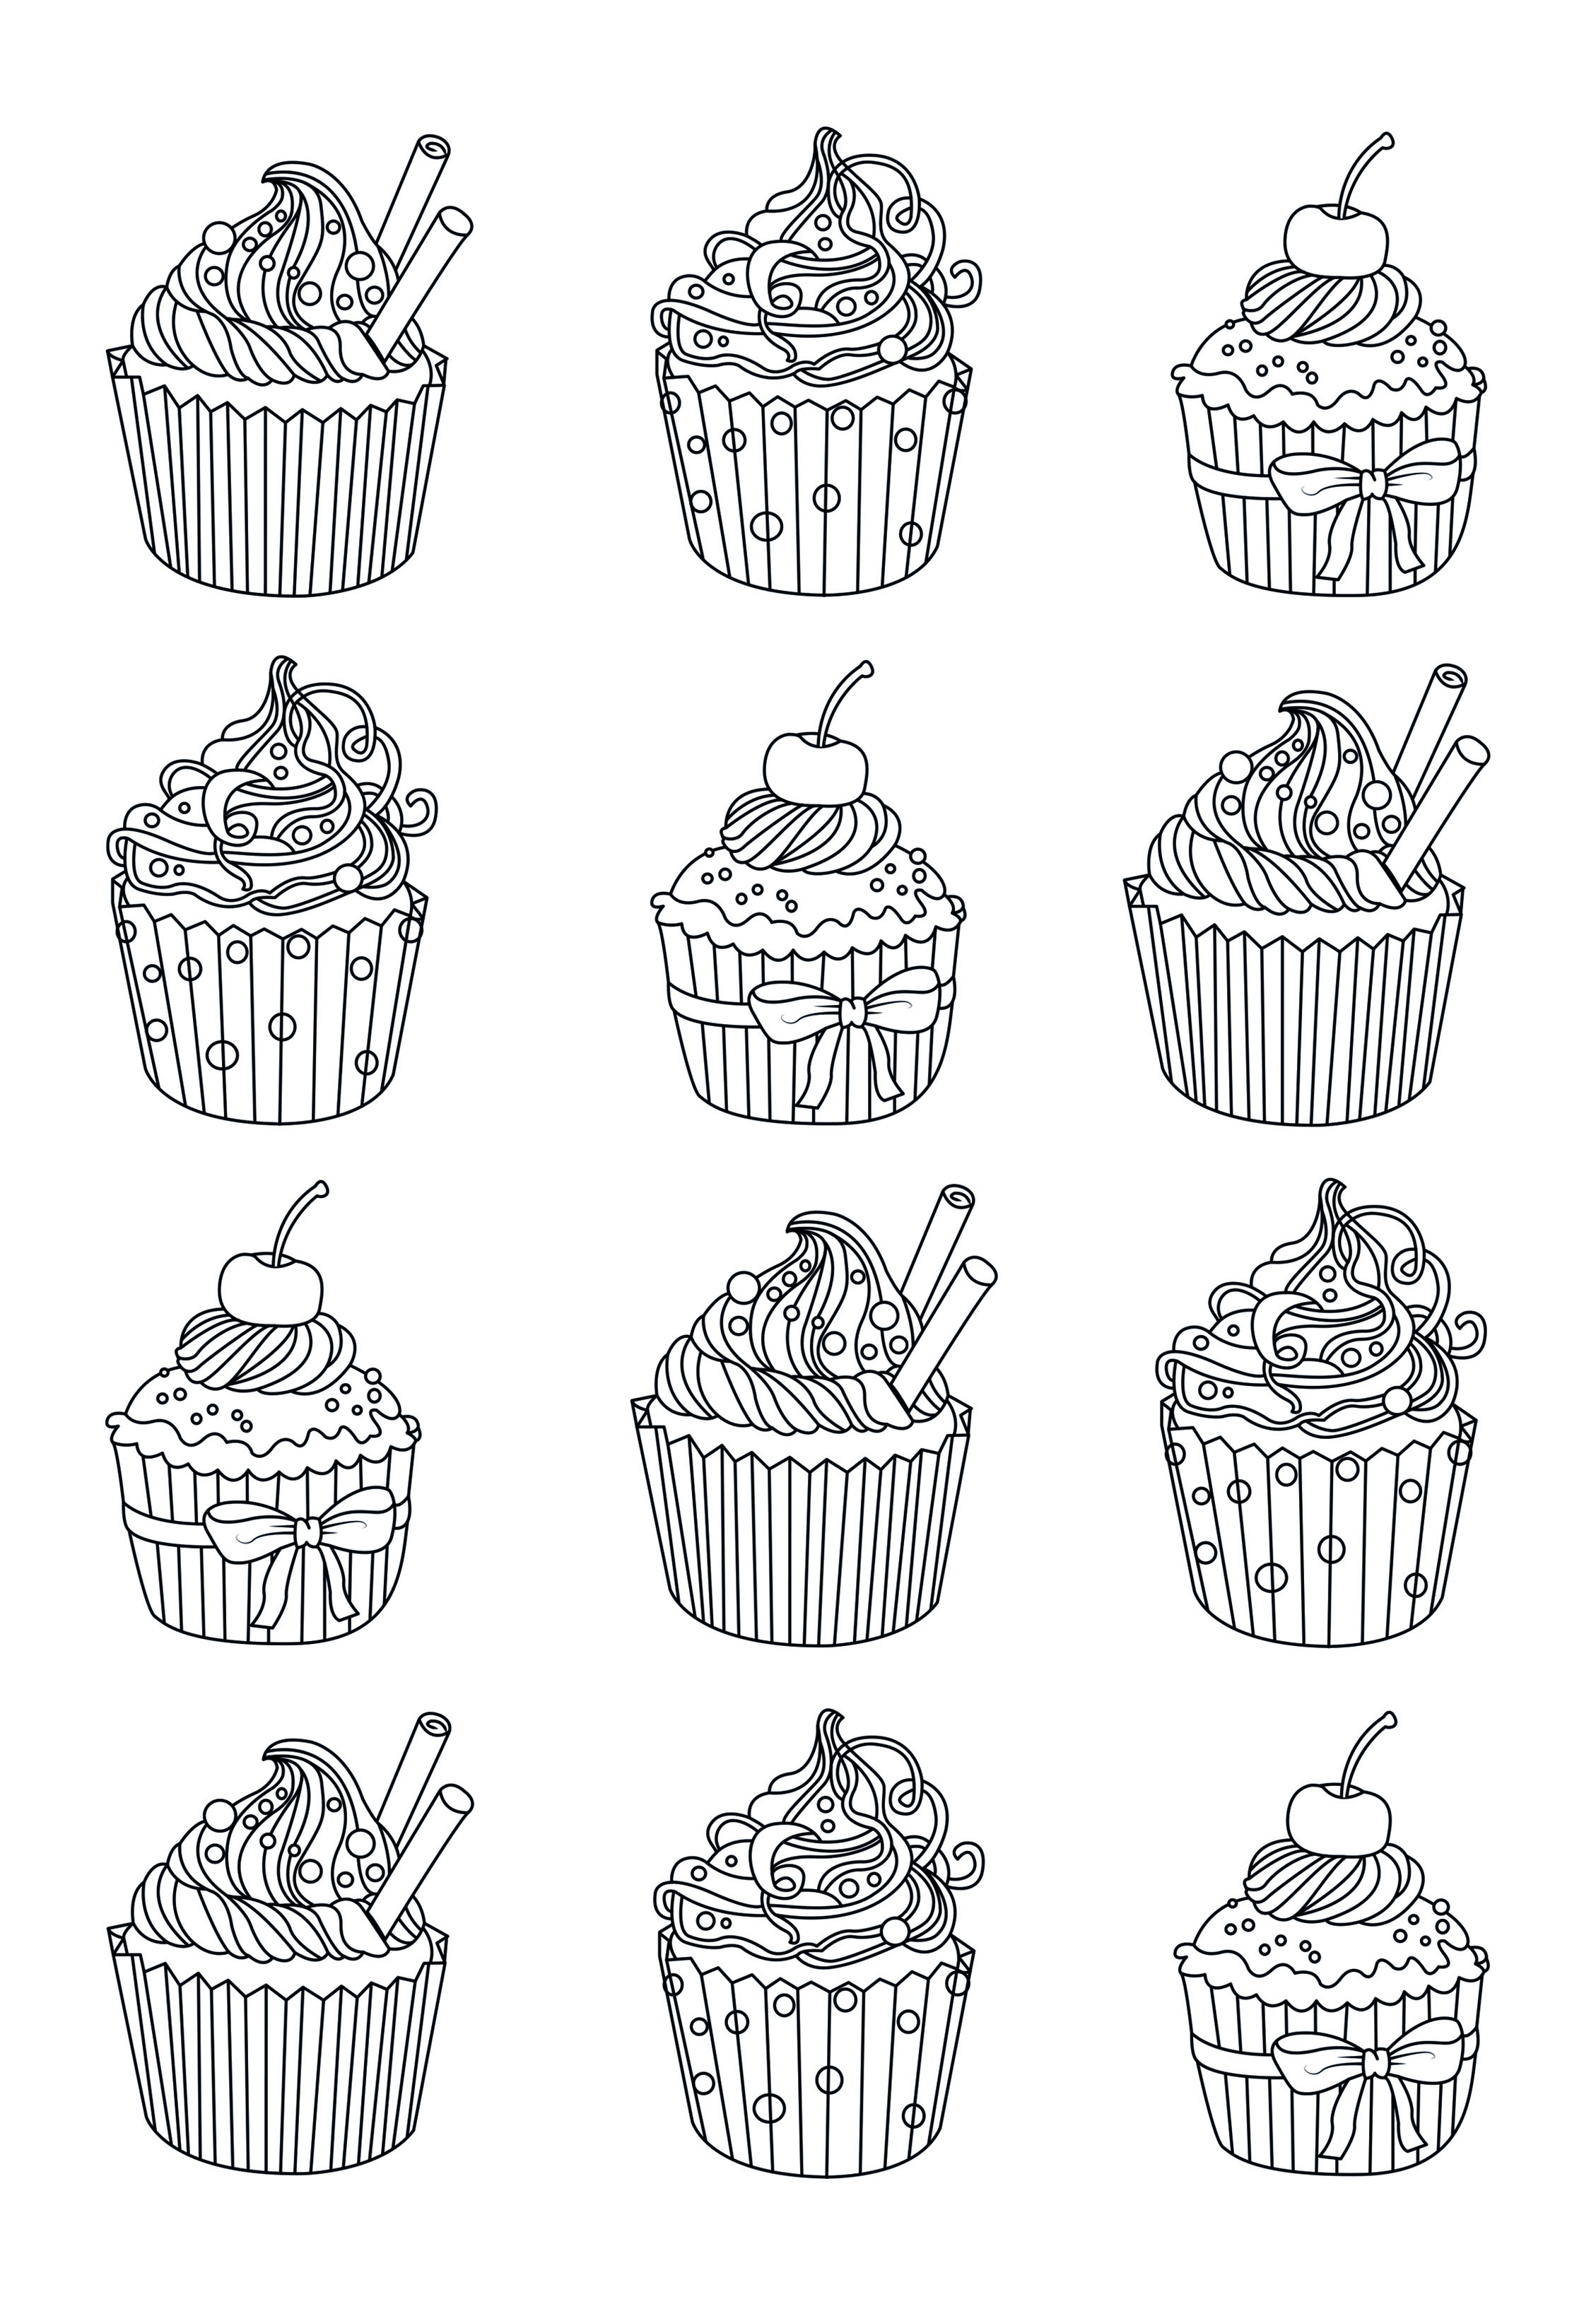 Cupcake Coloring Pages For Adults : Cup Cakes - Coloring pages for adults : coloring-page ...